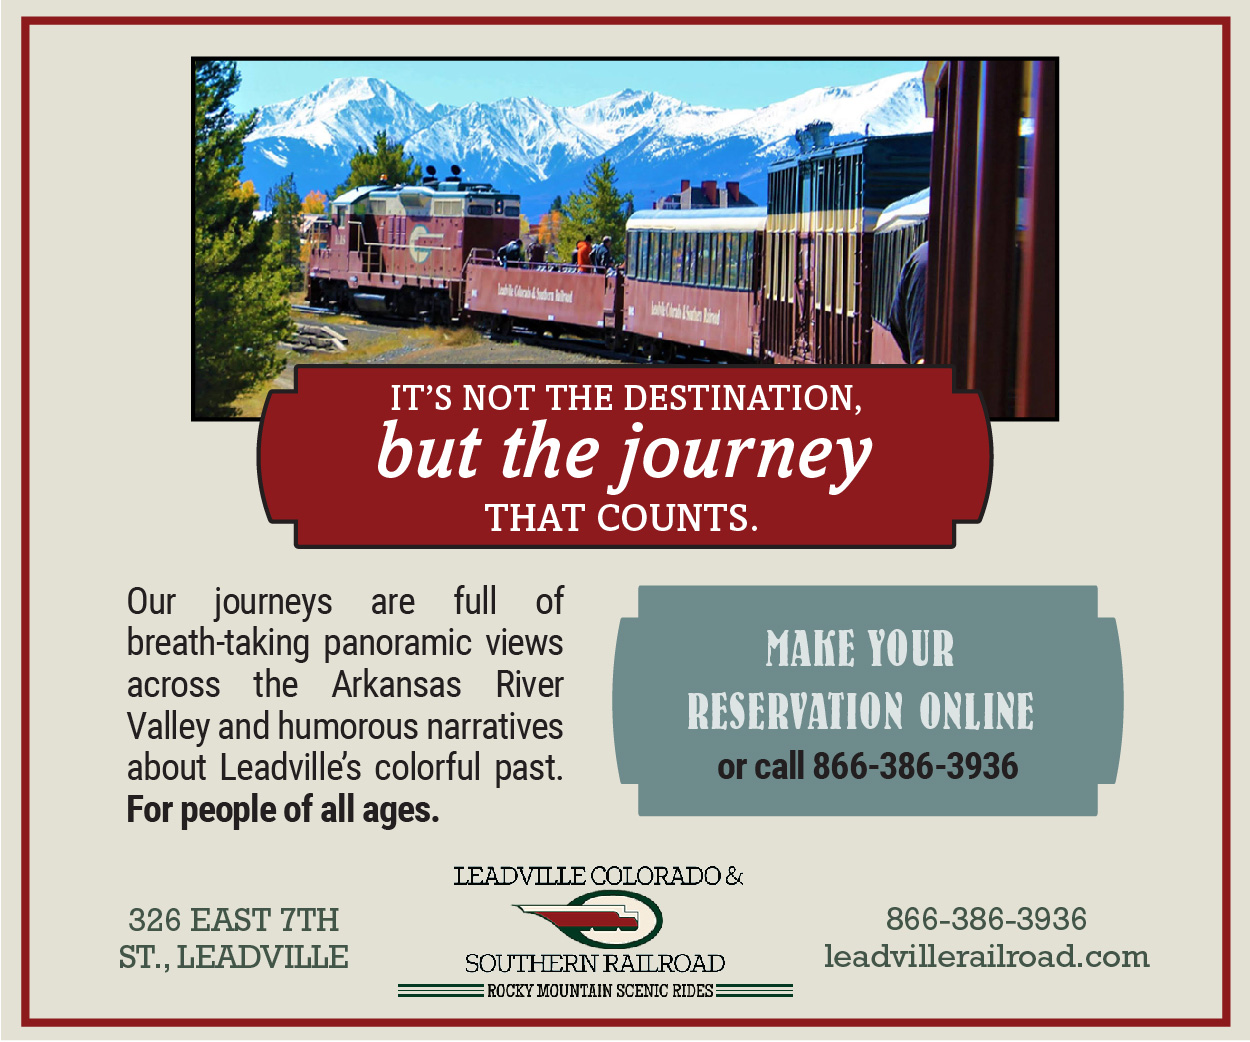 Visit  Leadville, Colorado & Southern Railroad (Leadville Train)